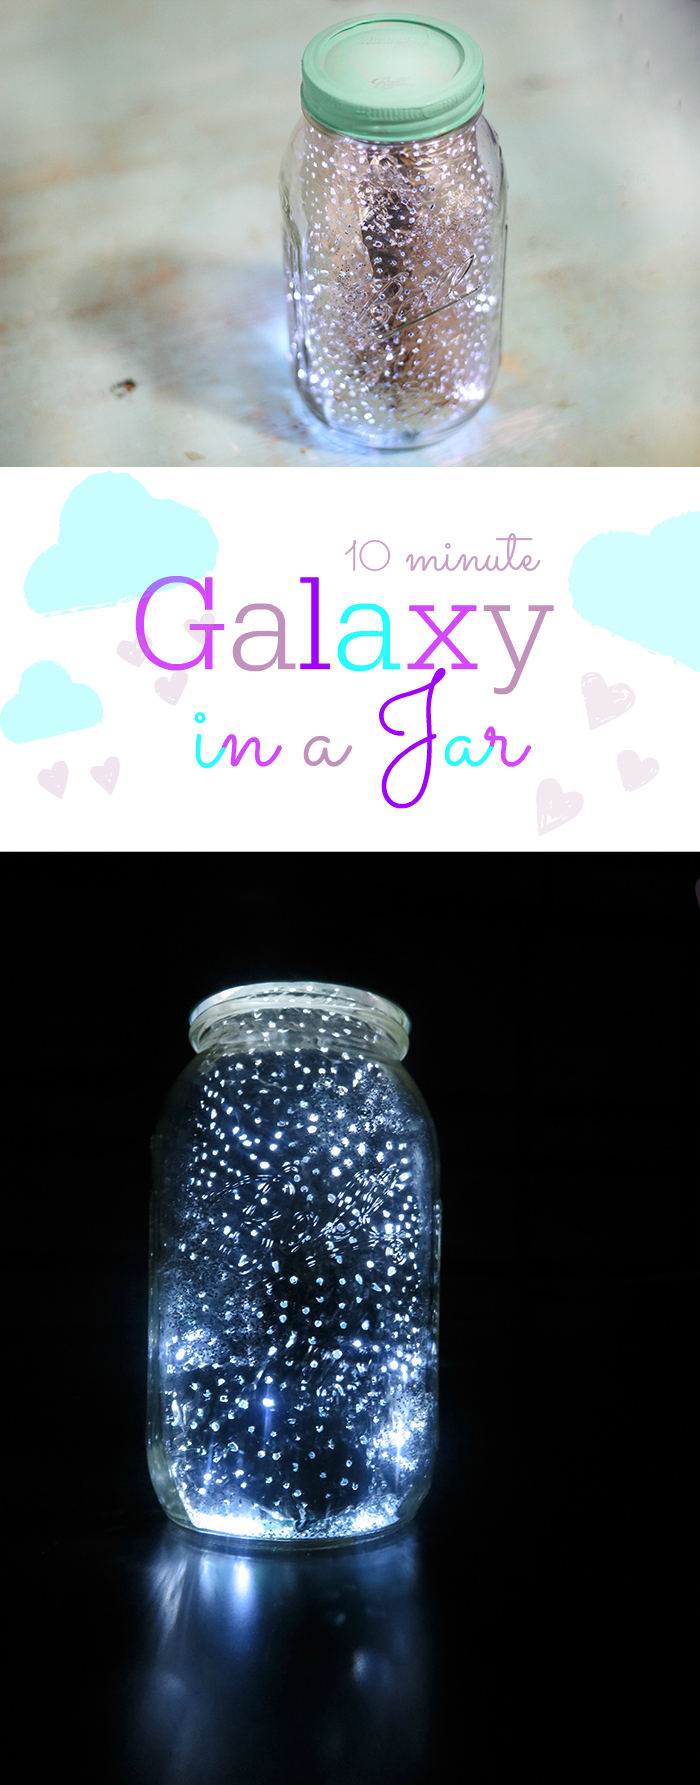 Galaxy in a jar in just 10 minutes. No paint required. This is so much fun.